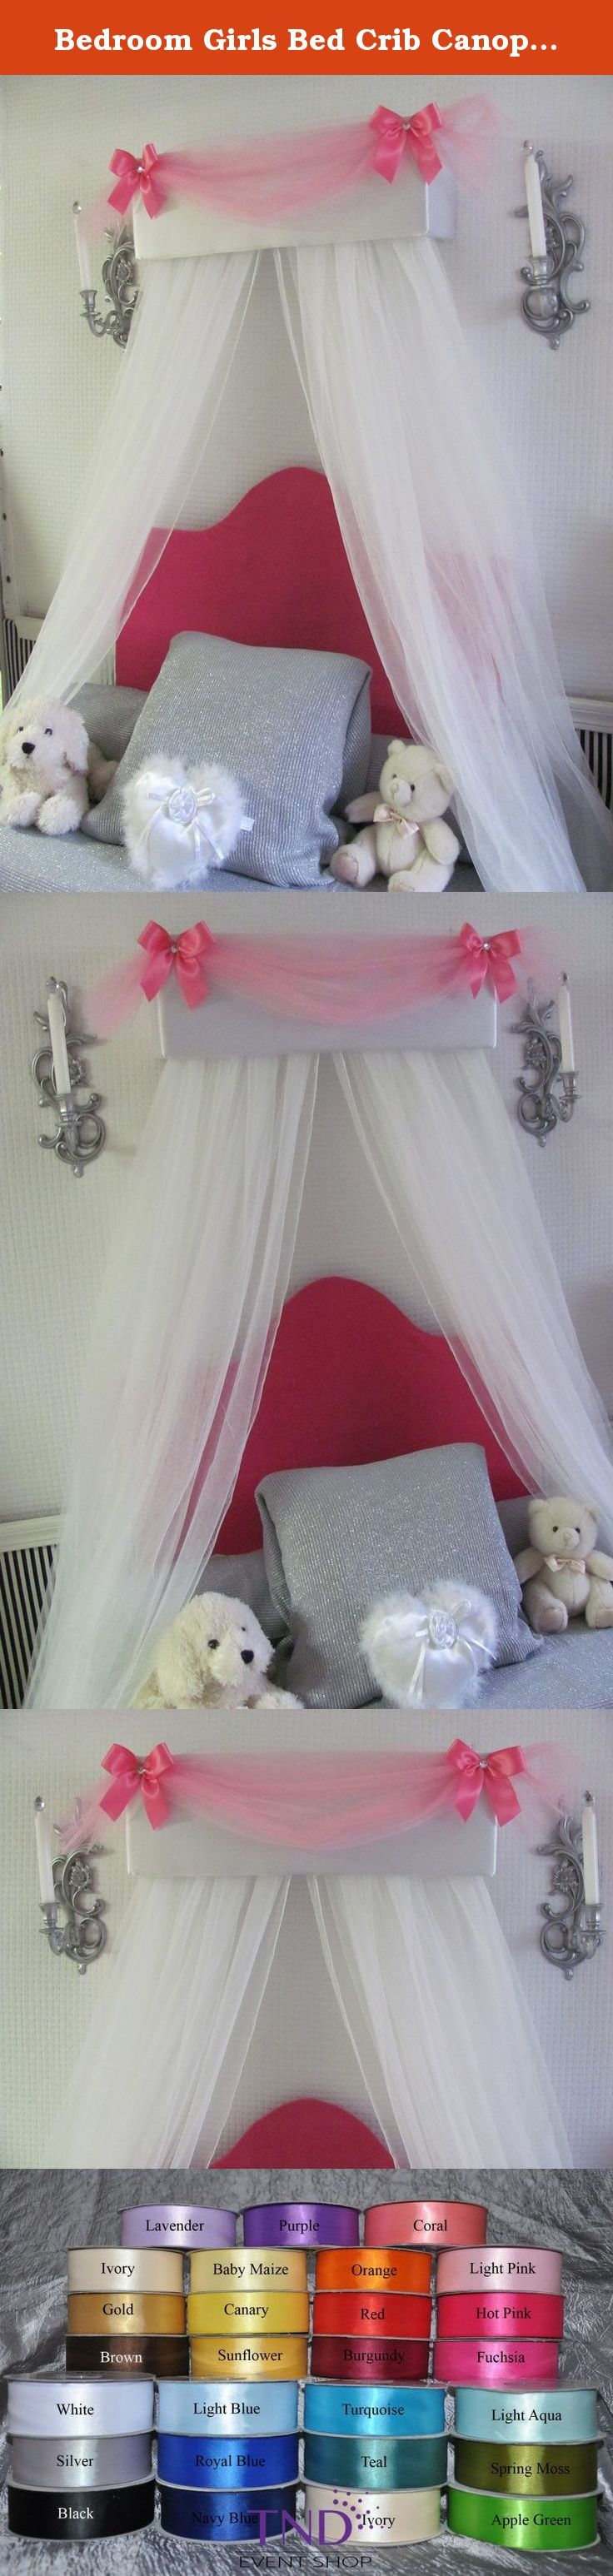 Crib for sale davao - Bedroom Girls Bed Crib Canopy White Padded Hot Pink Tulle Swag And Bow With White Sheer